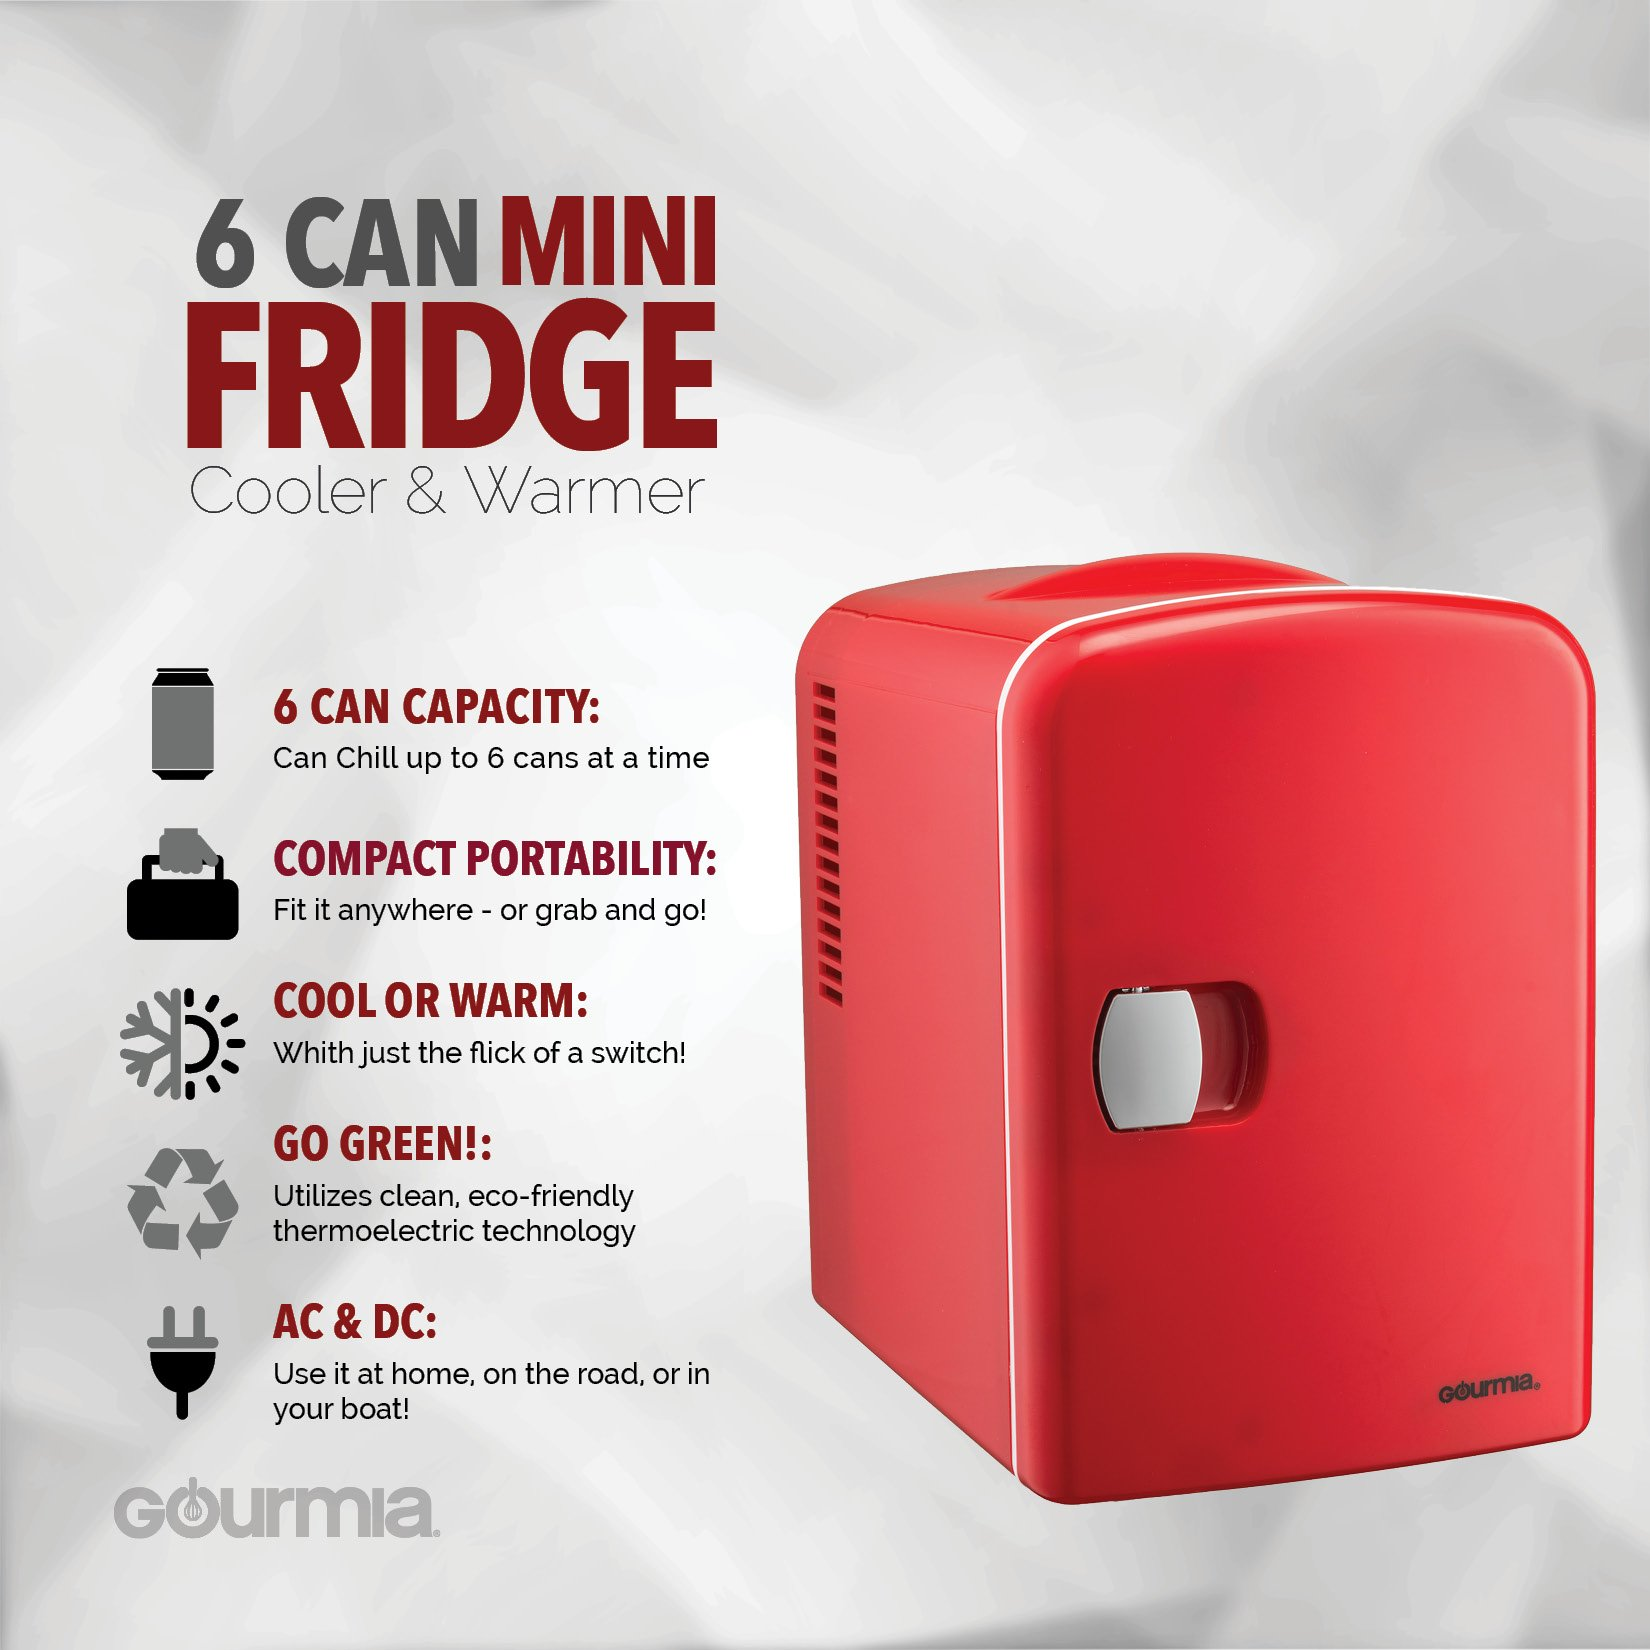 Gourmia GMF600 Thermoelectric Mini Fridge Cooler and Warmer - 4 Liter/ 6 Can - For Home,Office, Car, Dorm or Boat - Compact & Portable - AC & DC Power Cords - Red by Gourmia (Image #2)